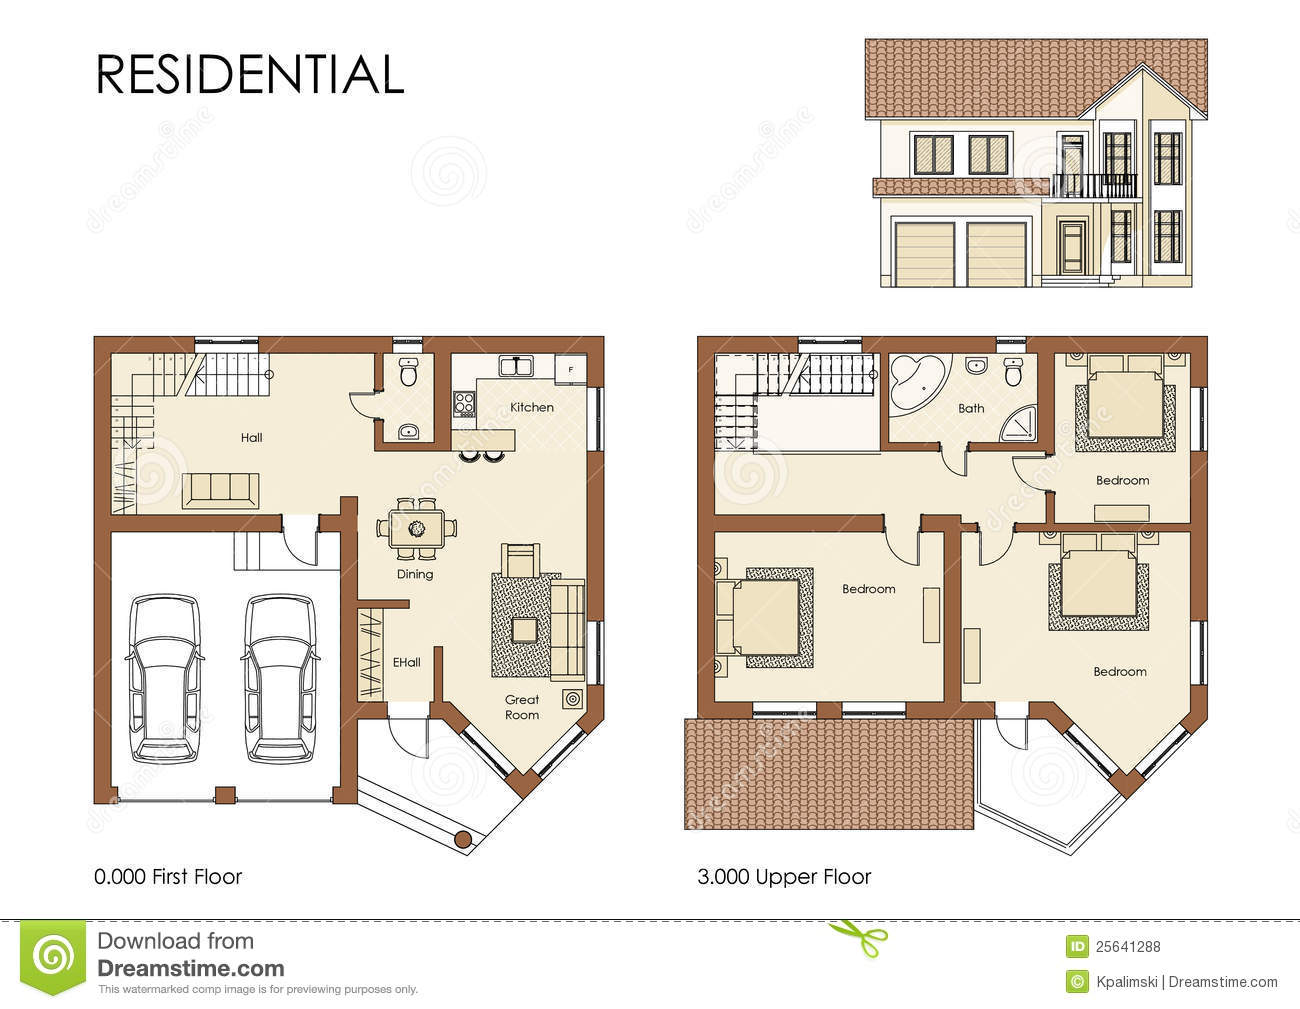 Residential House Plan Stock Illustration Image Of Living 25641288